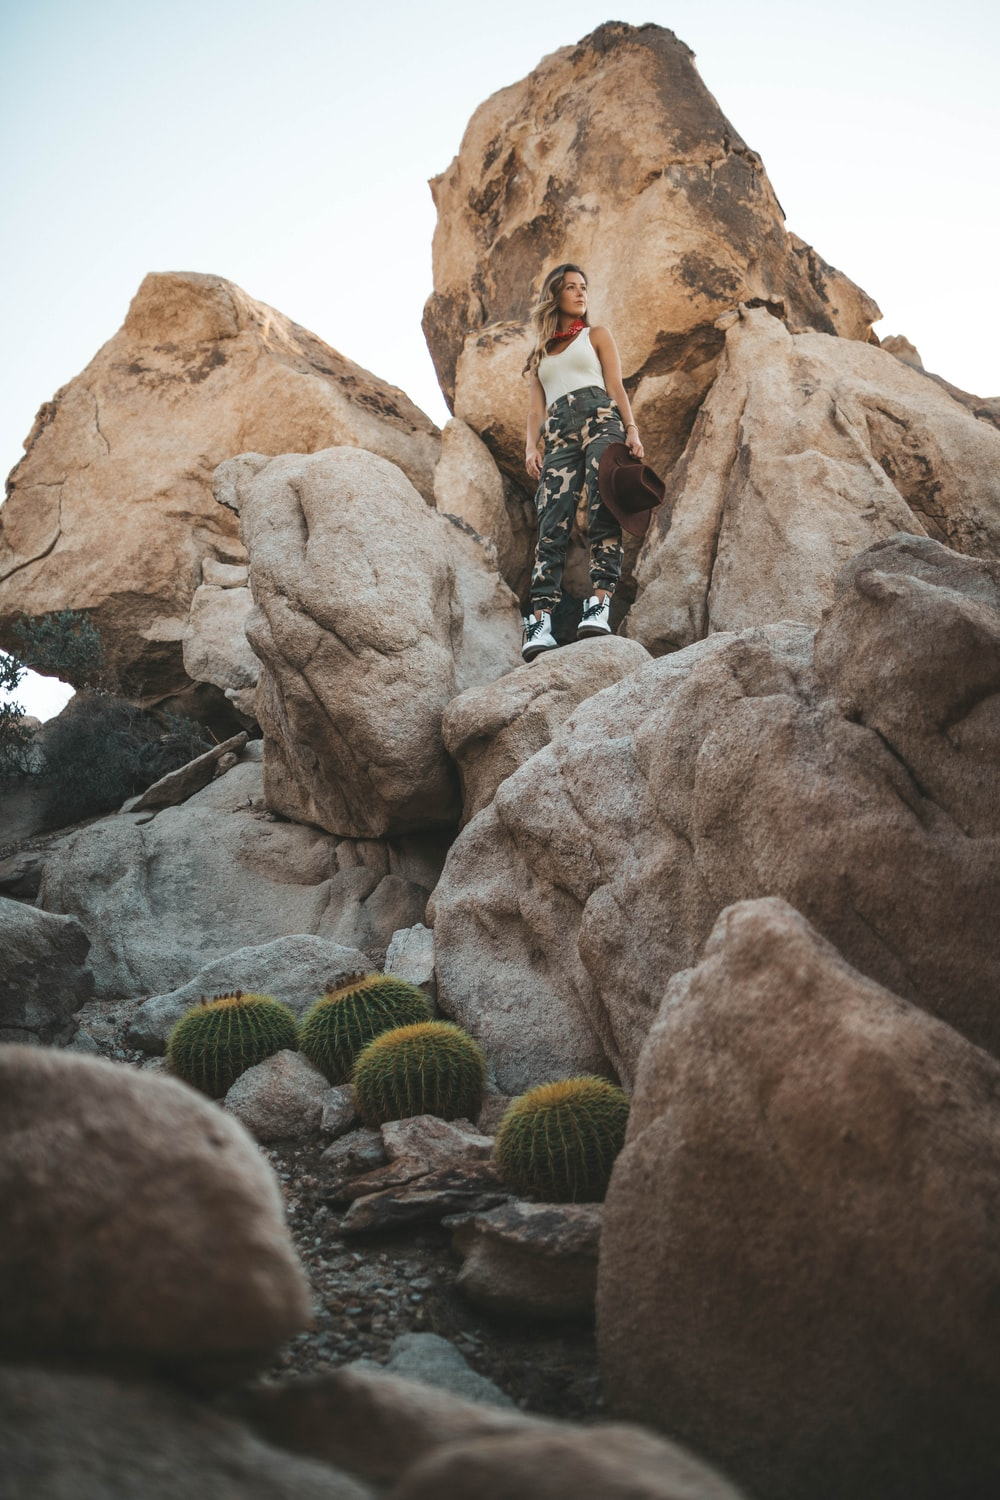 woman standing on rock formation near green cacti during daytime